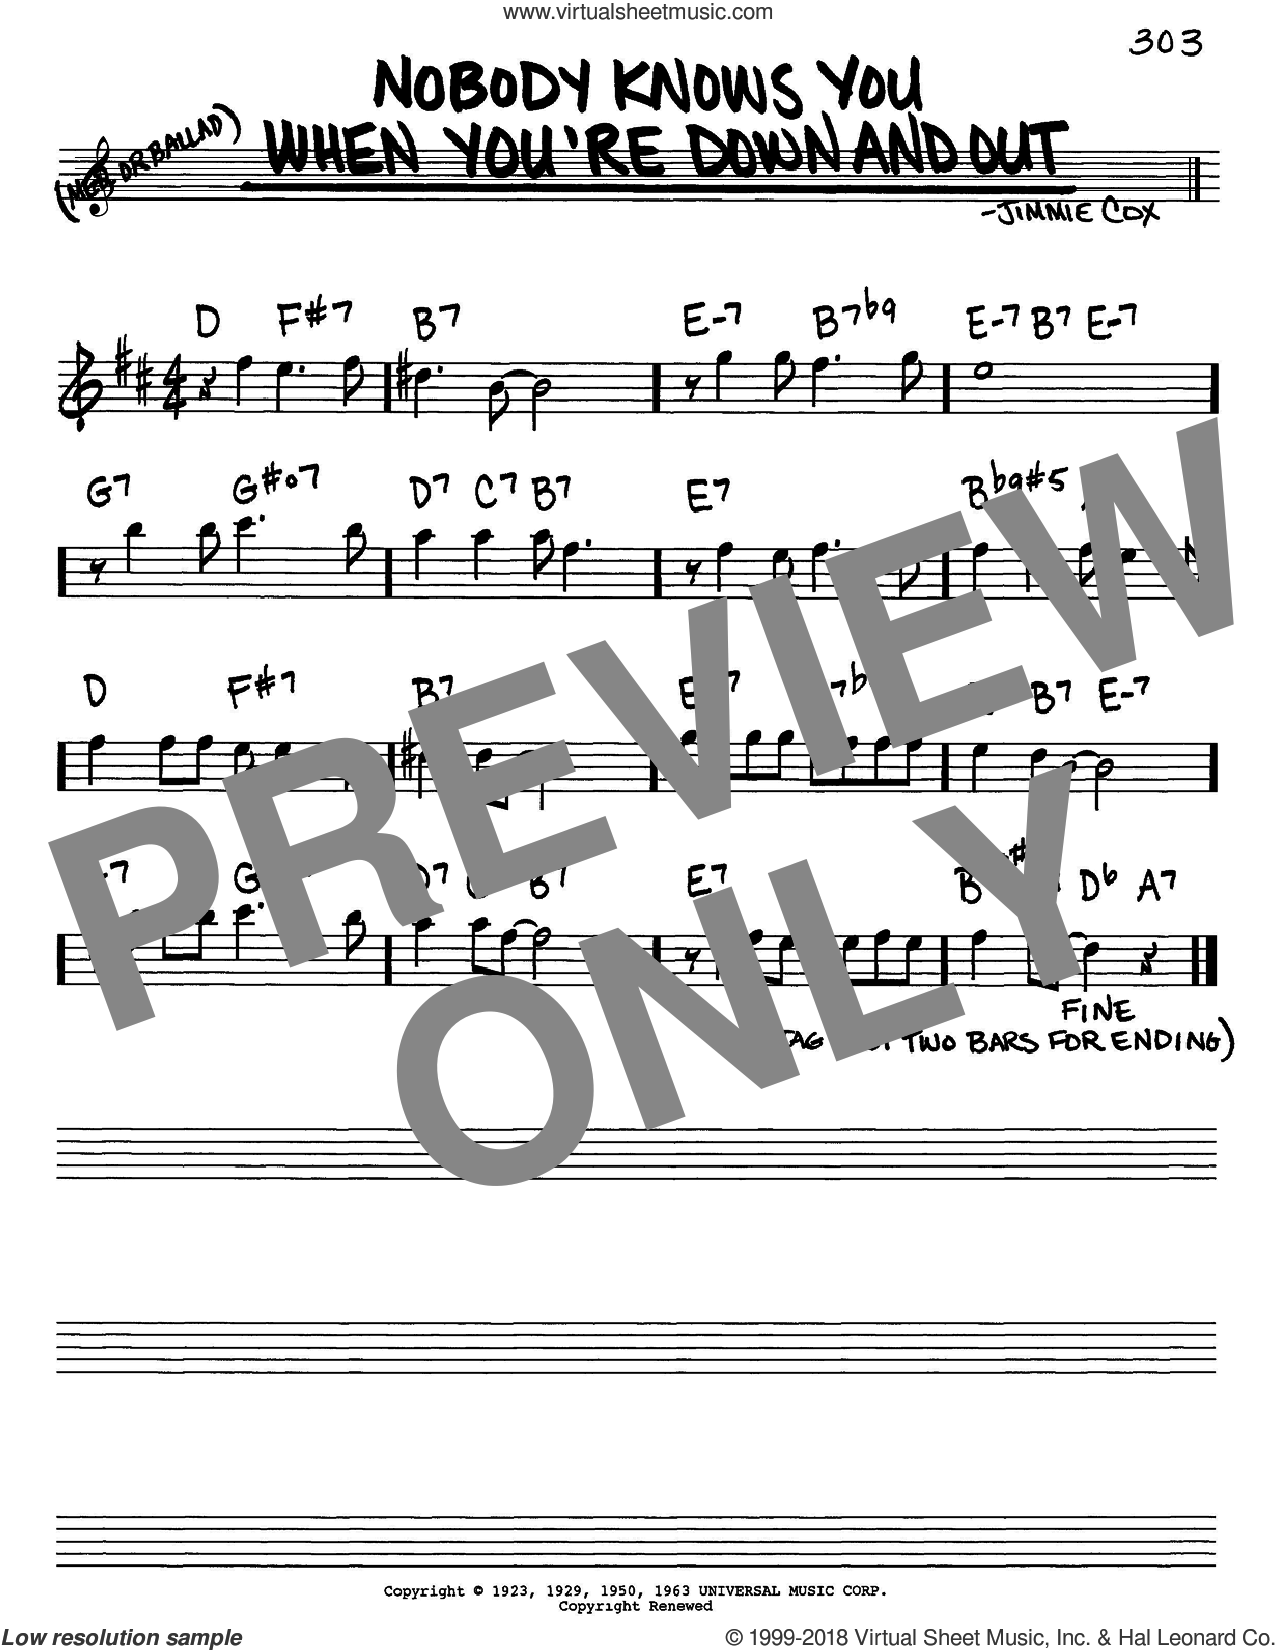 Nobody Knows You When You're Down And Out sheet music for voice and other instruments (Eb) by Jimmie Cox